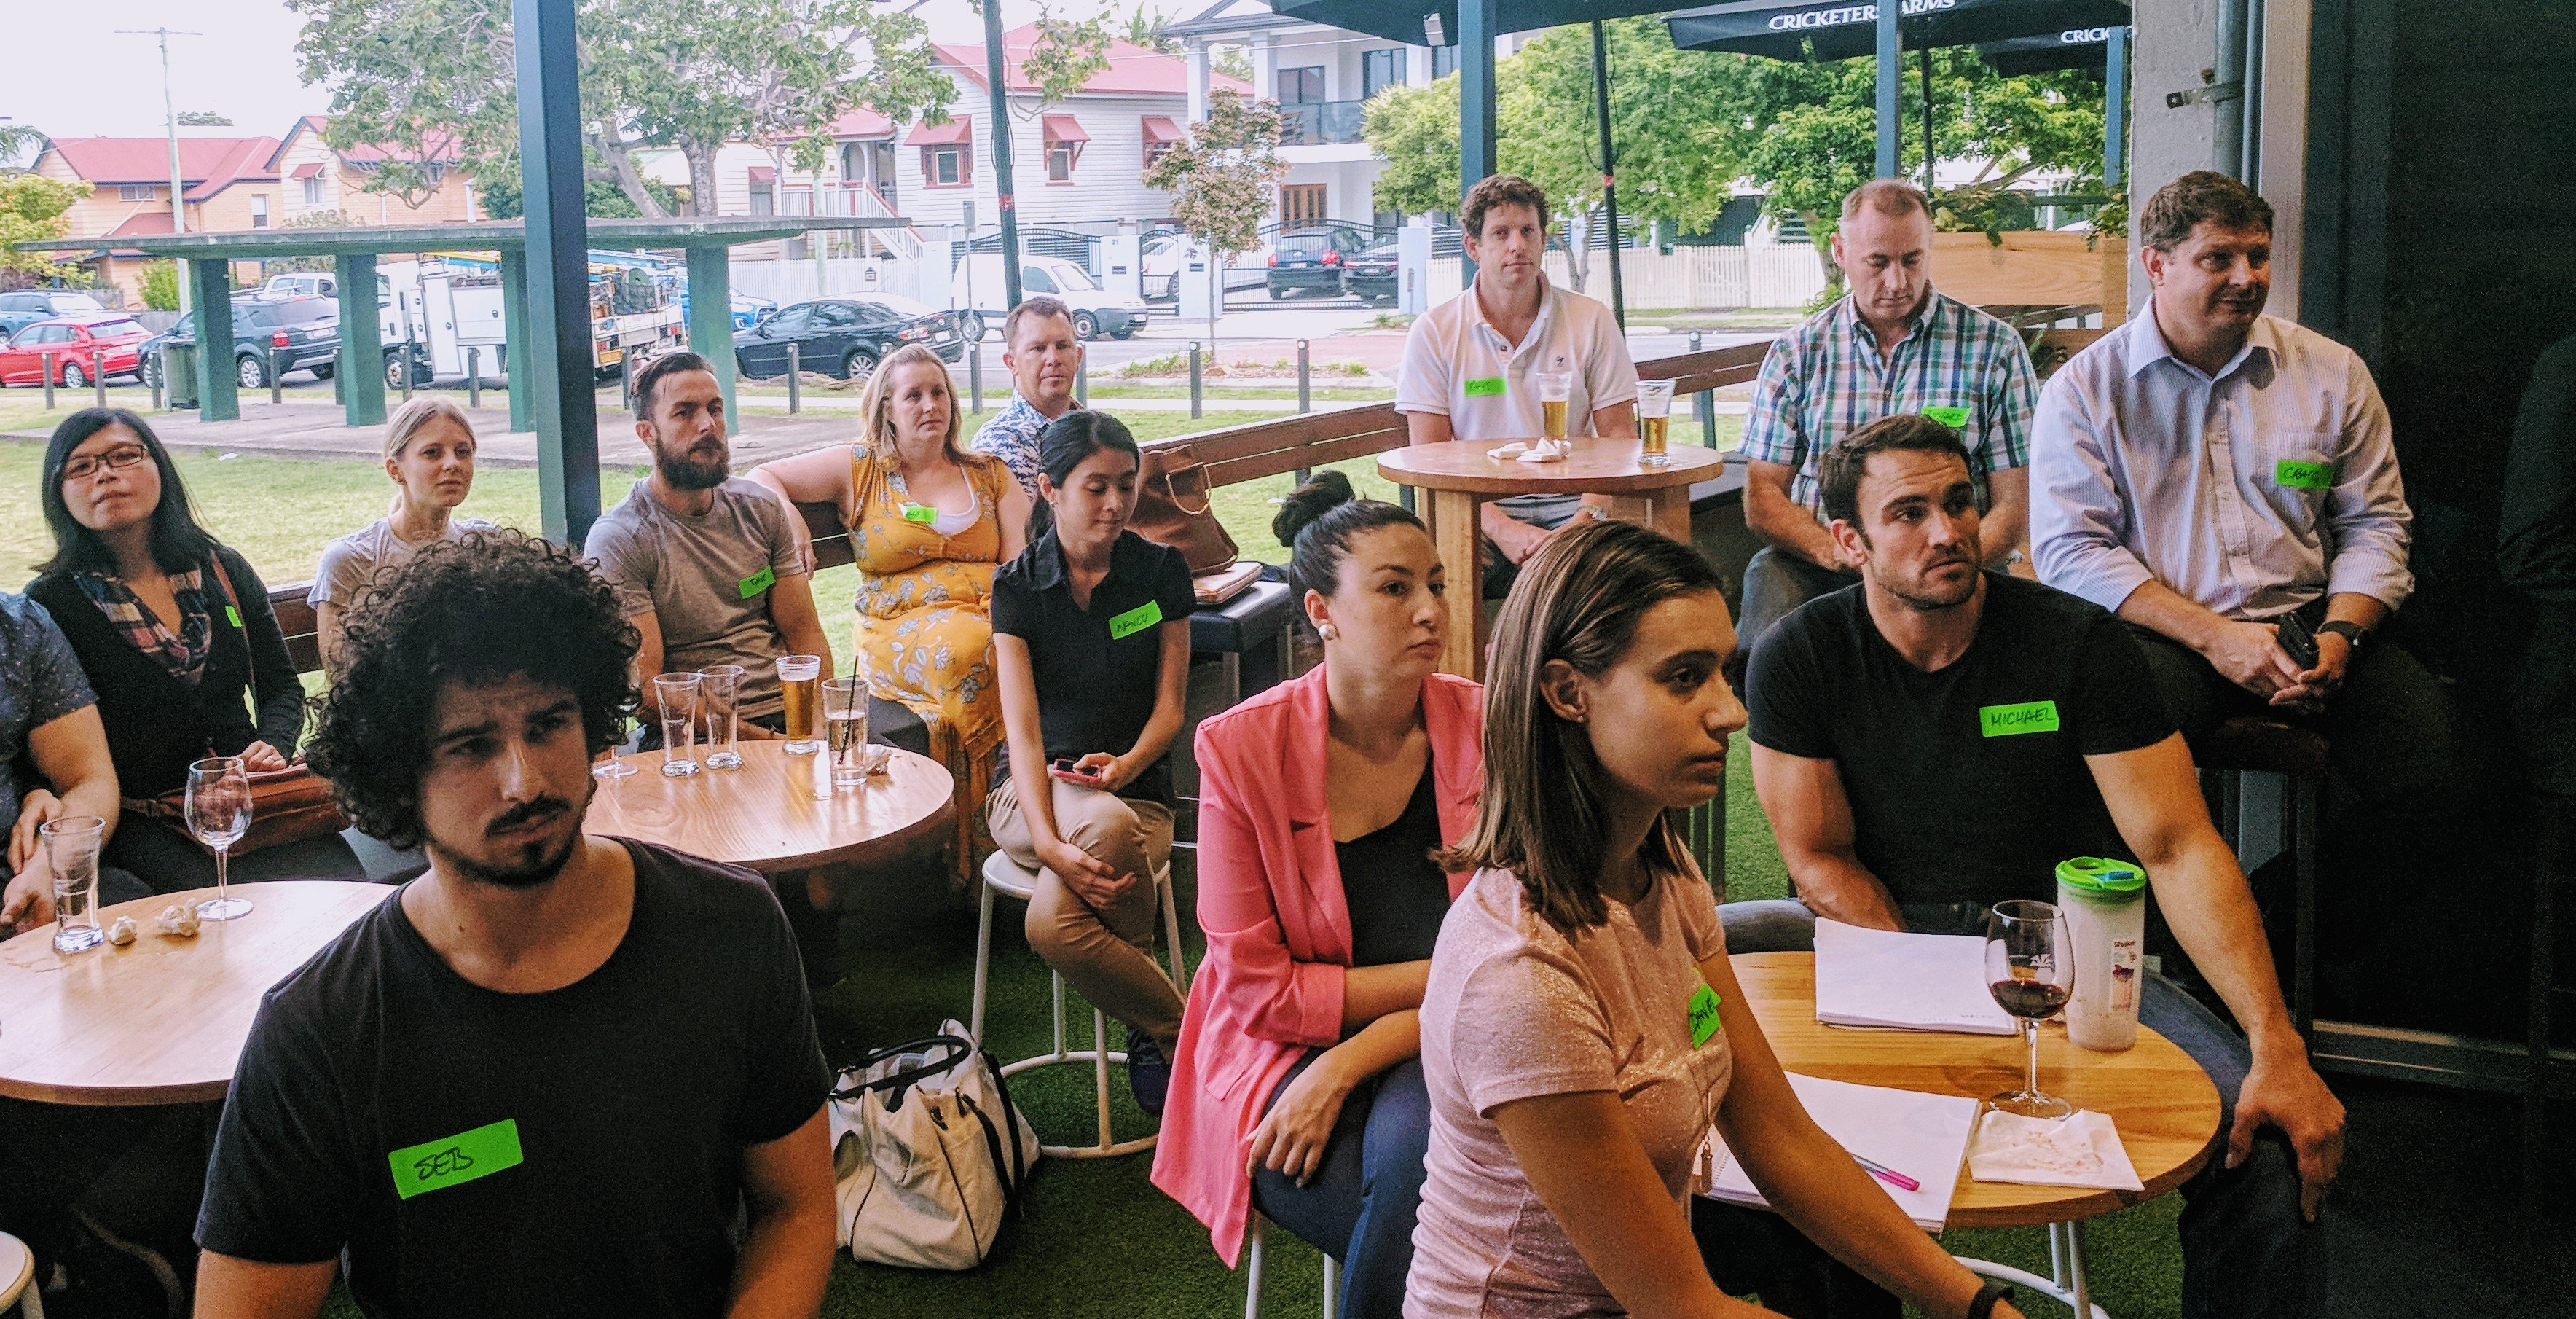 inbound-brisbane-meetup-photo4.jpg